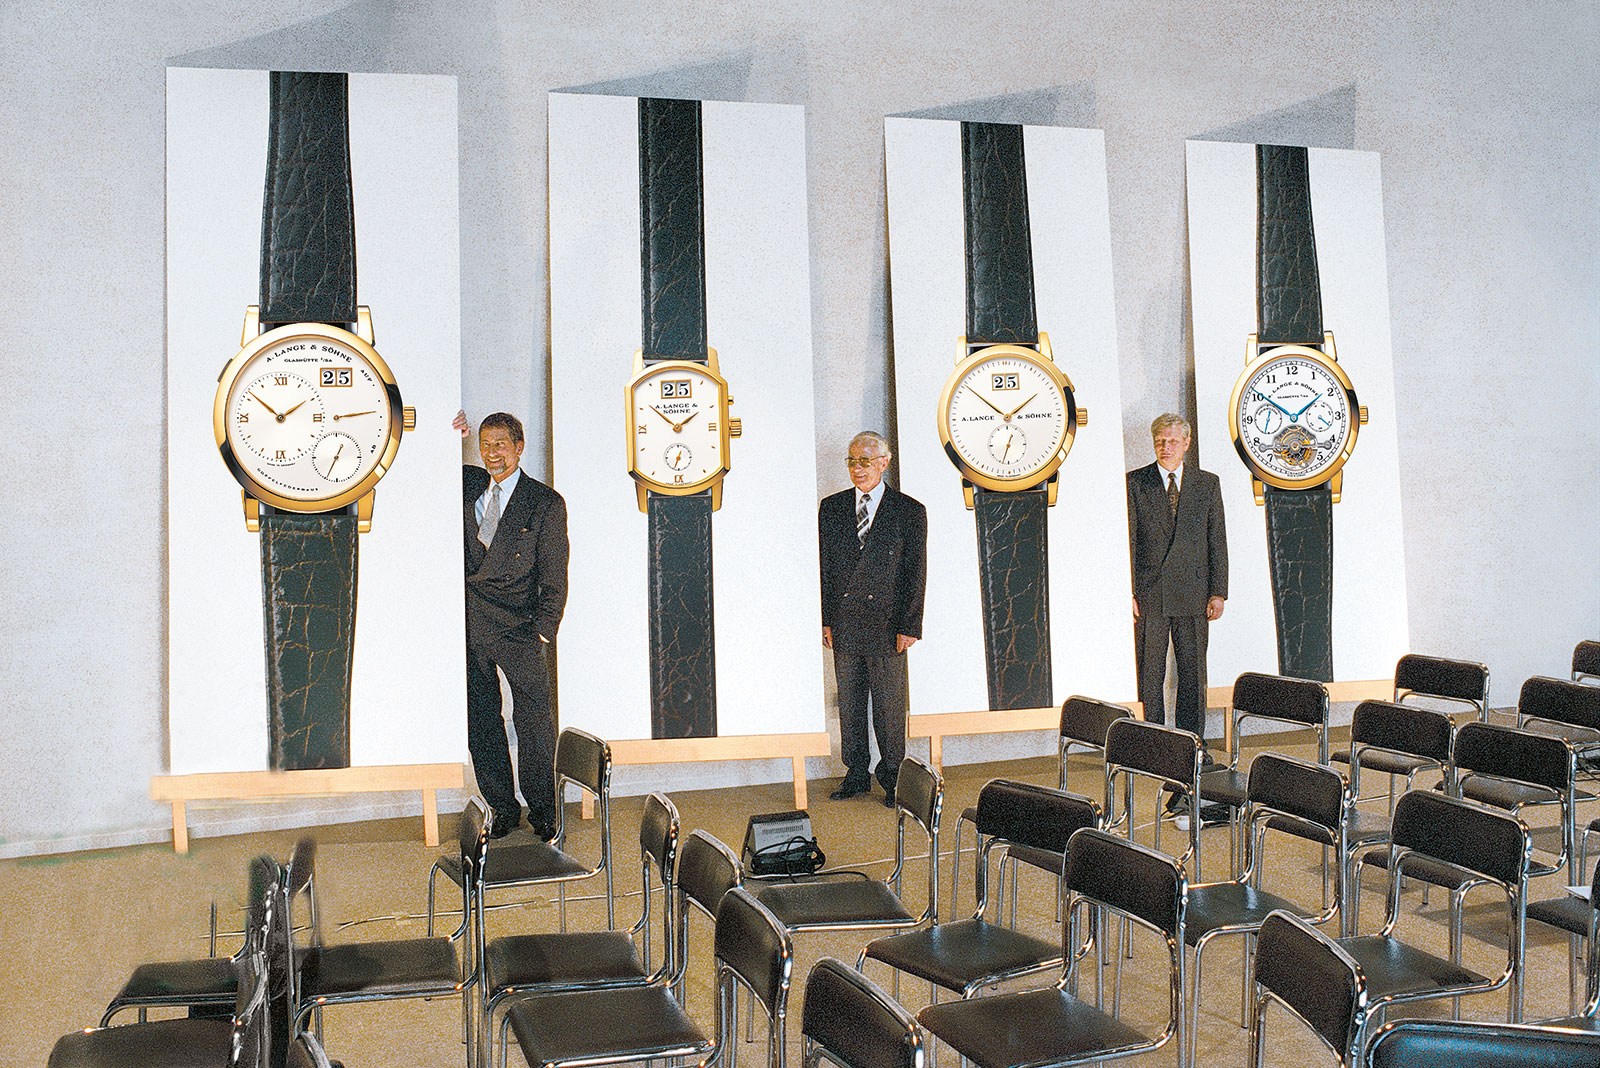 Lange launch first presentation 1994